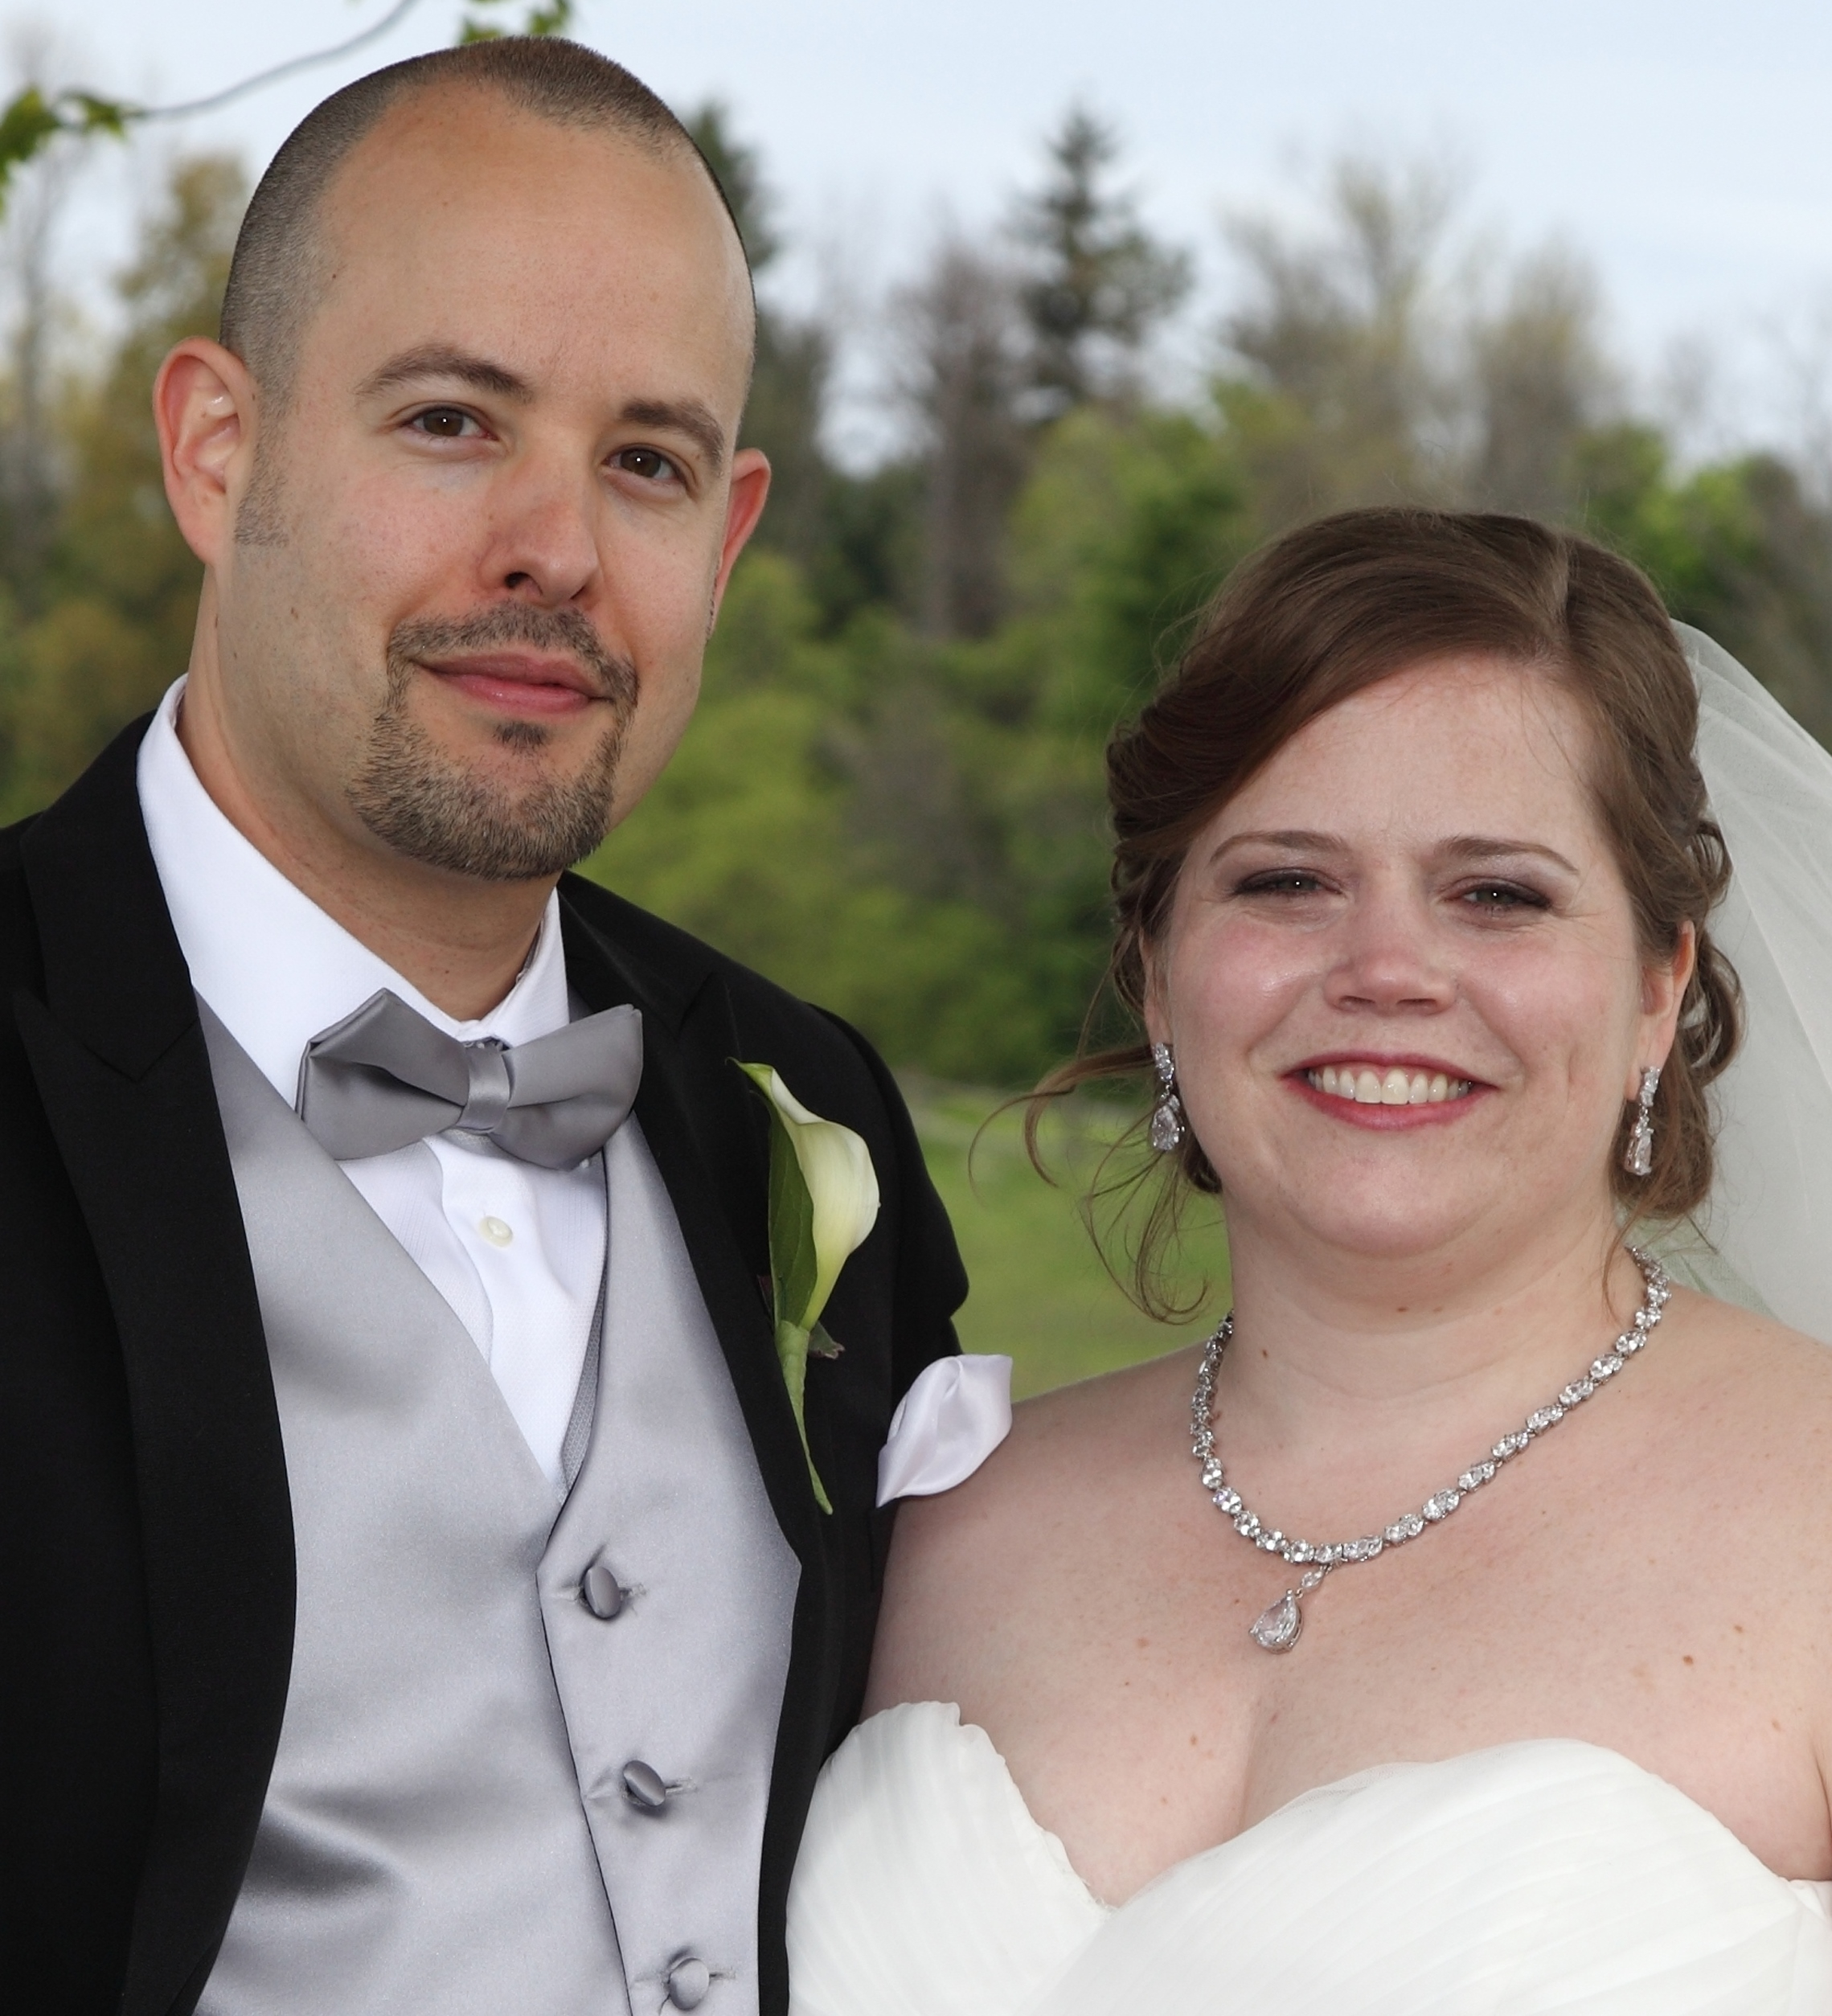 Jeanne G. Carmichael and Brian J. Hoeckh marry